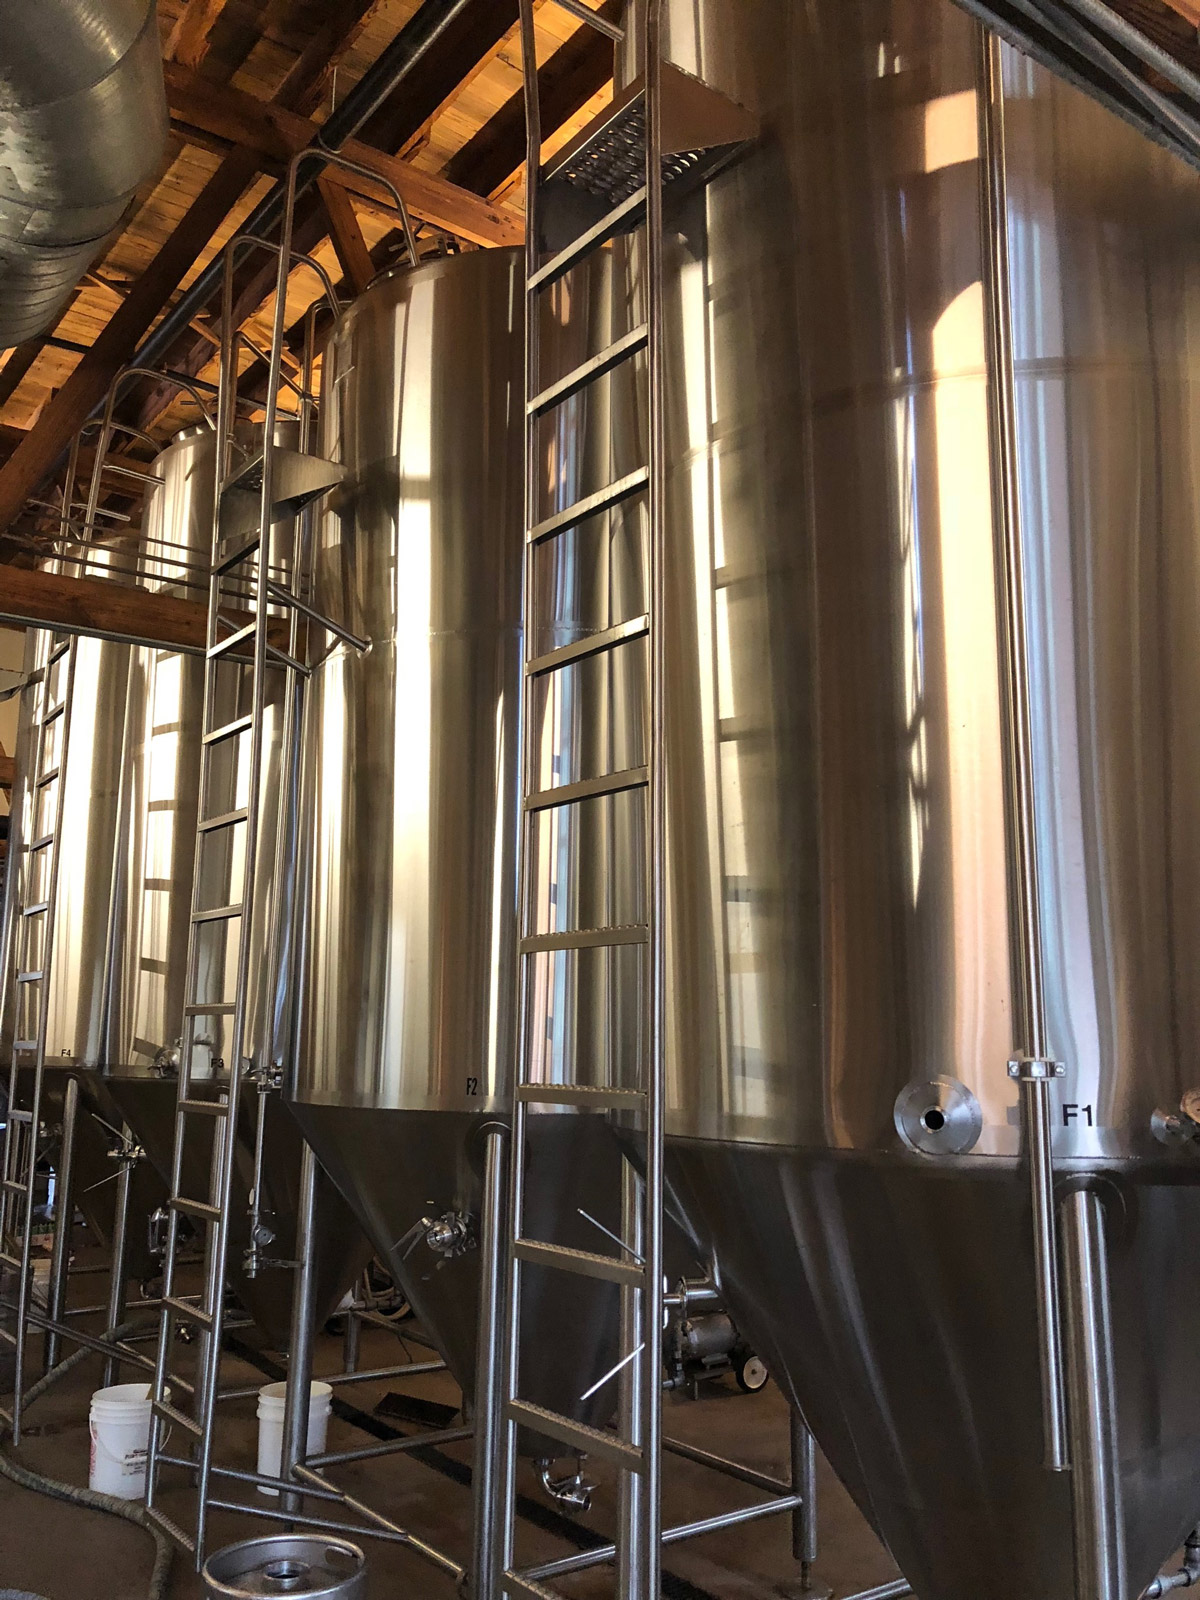 An image of the fermentation tanks at Brewery Vivant in Grand Rapids, MI.